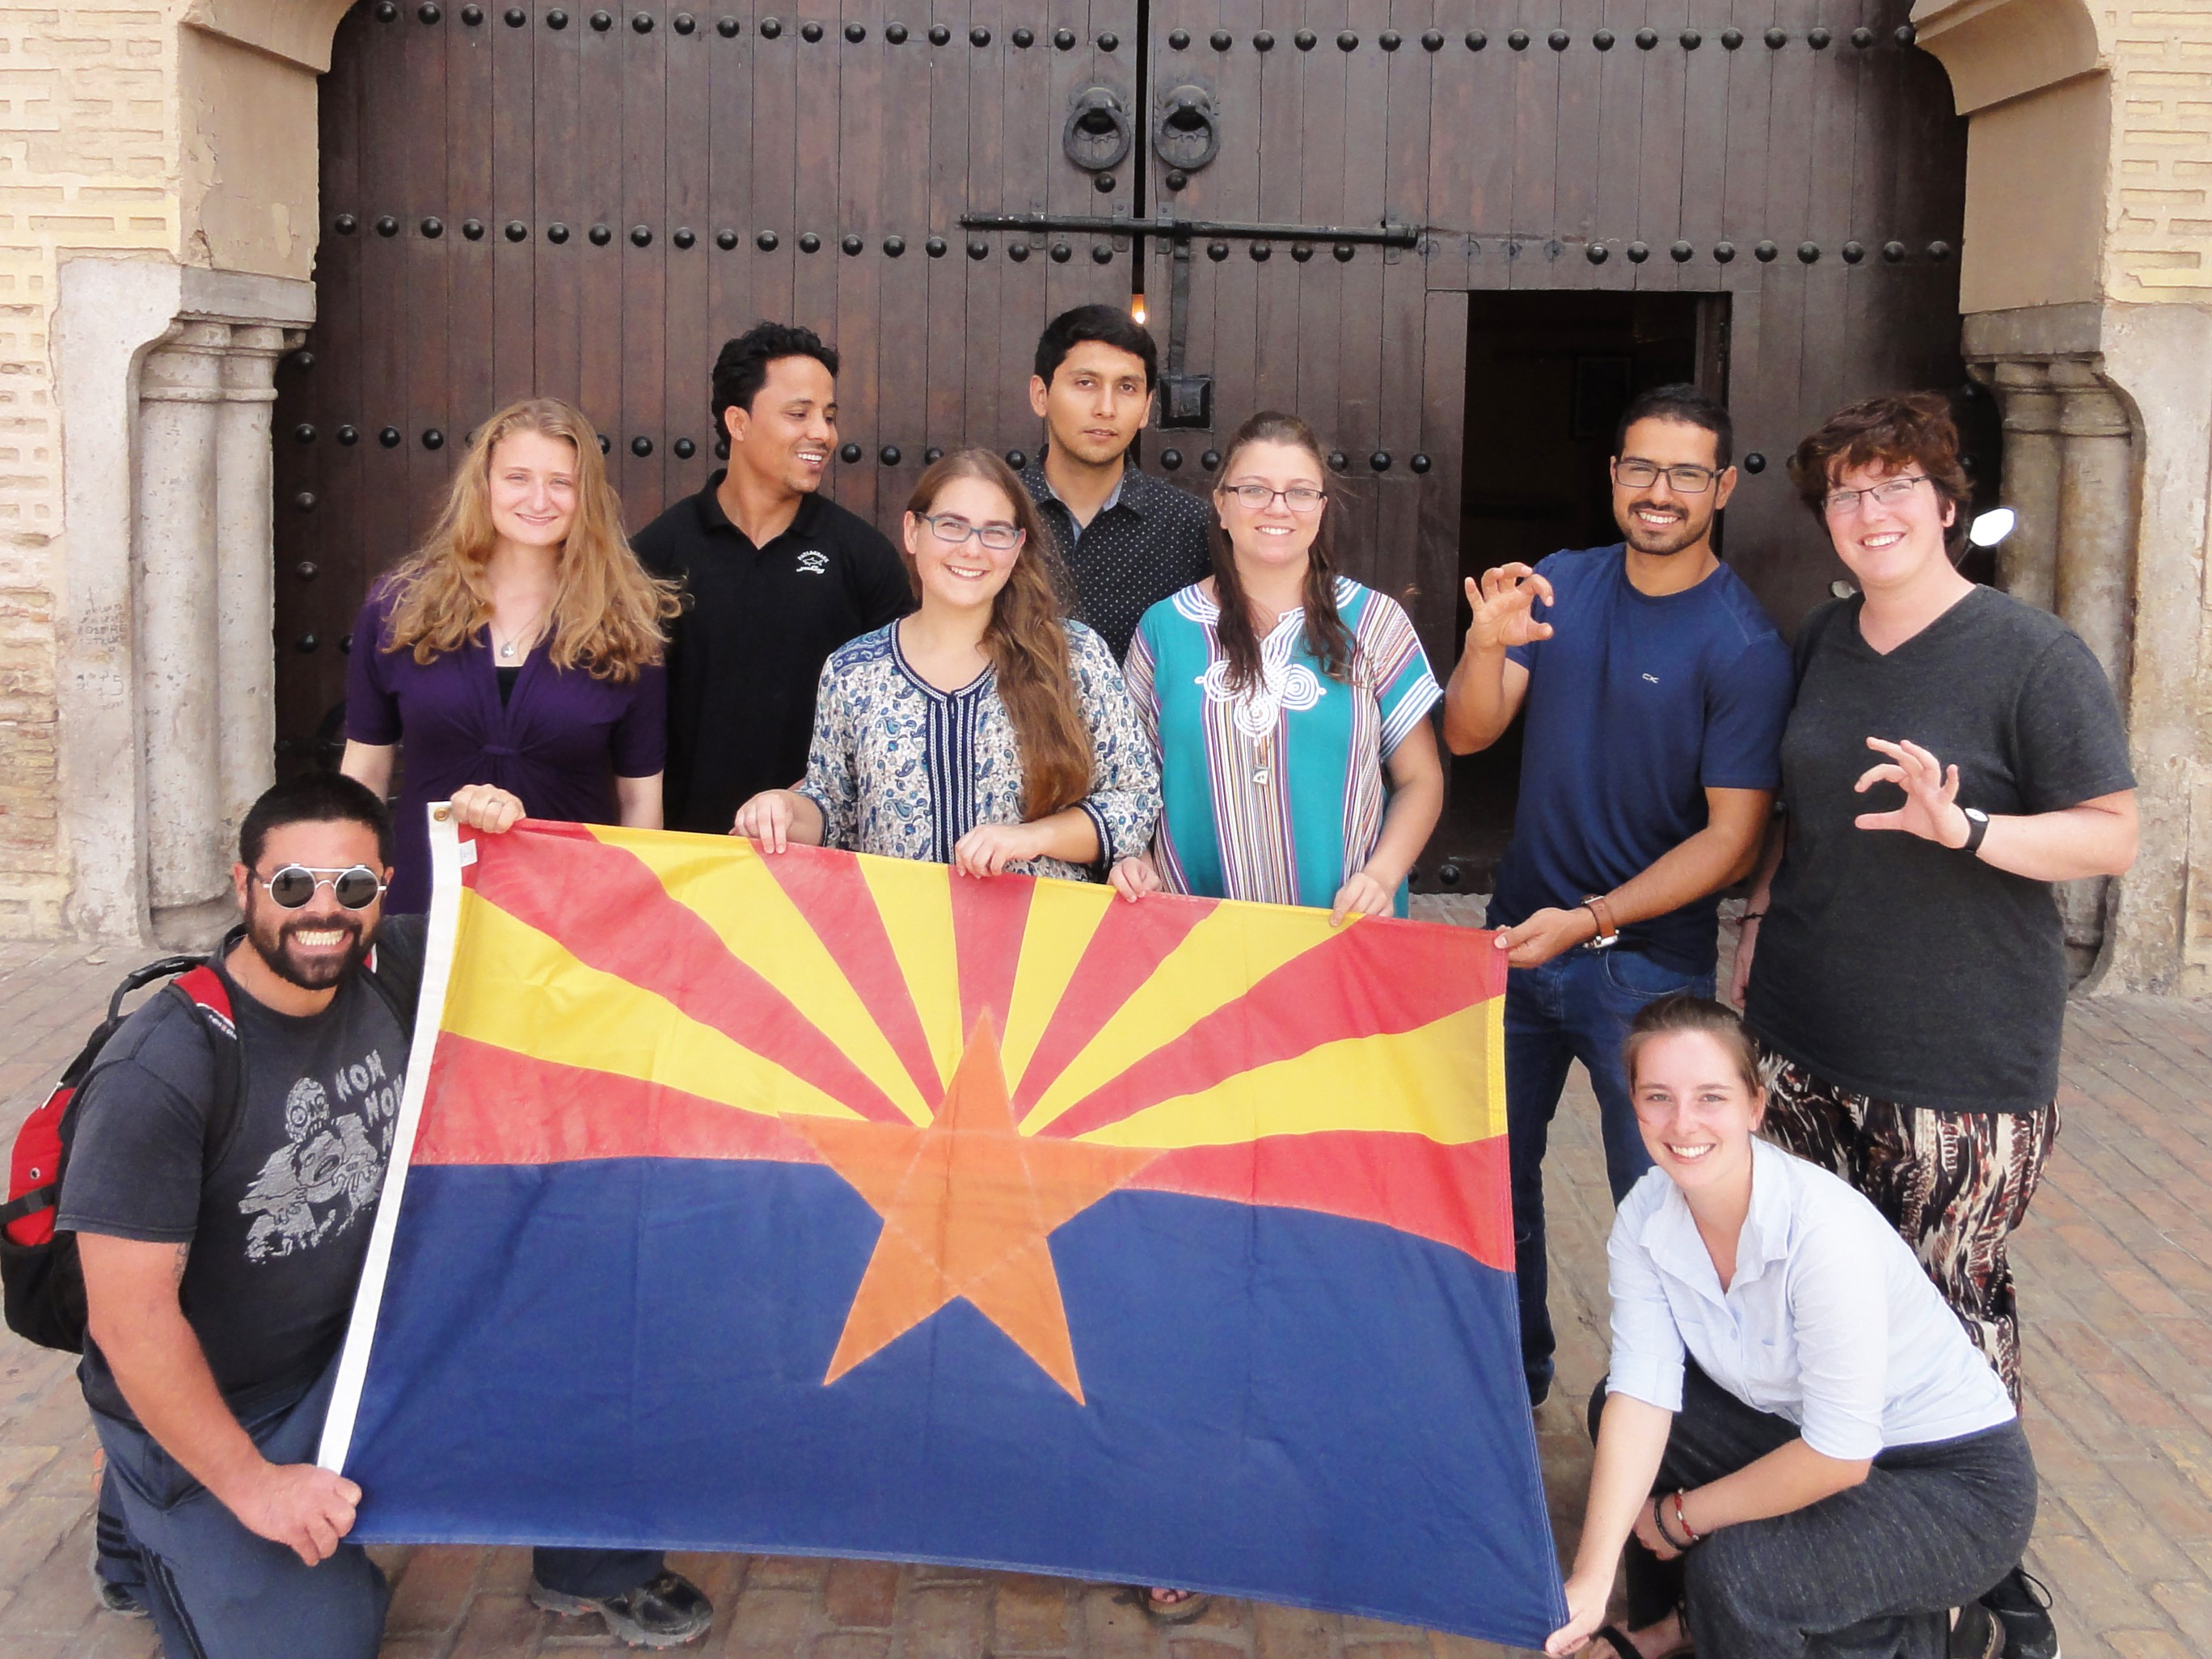 Arizona Arabic Flagship students during a study abroad trip to Meknes, Morocco, before COVID-19. Nine students are holding an Arizona flag.